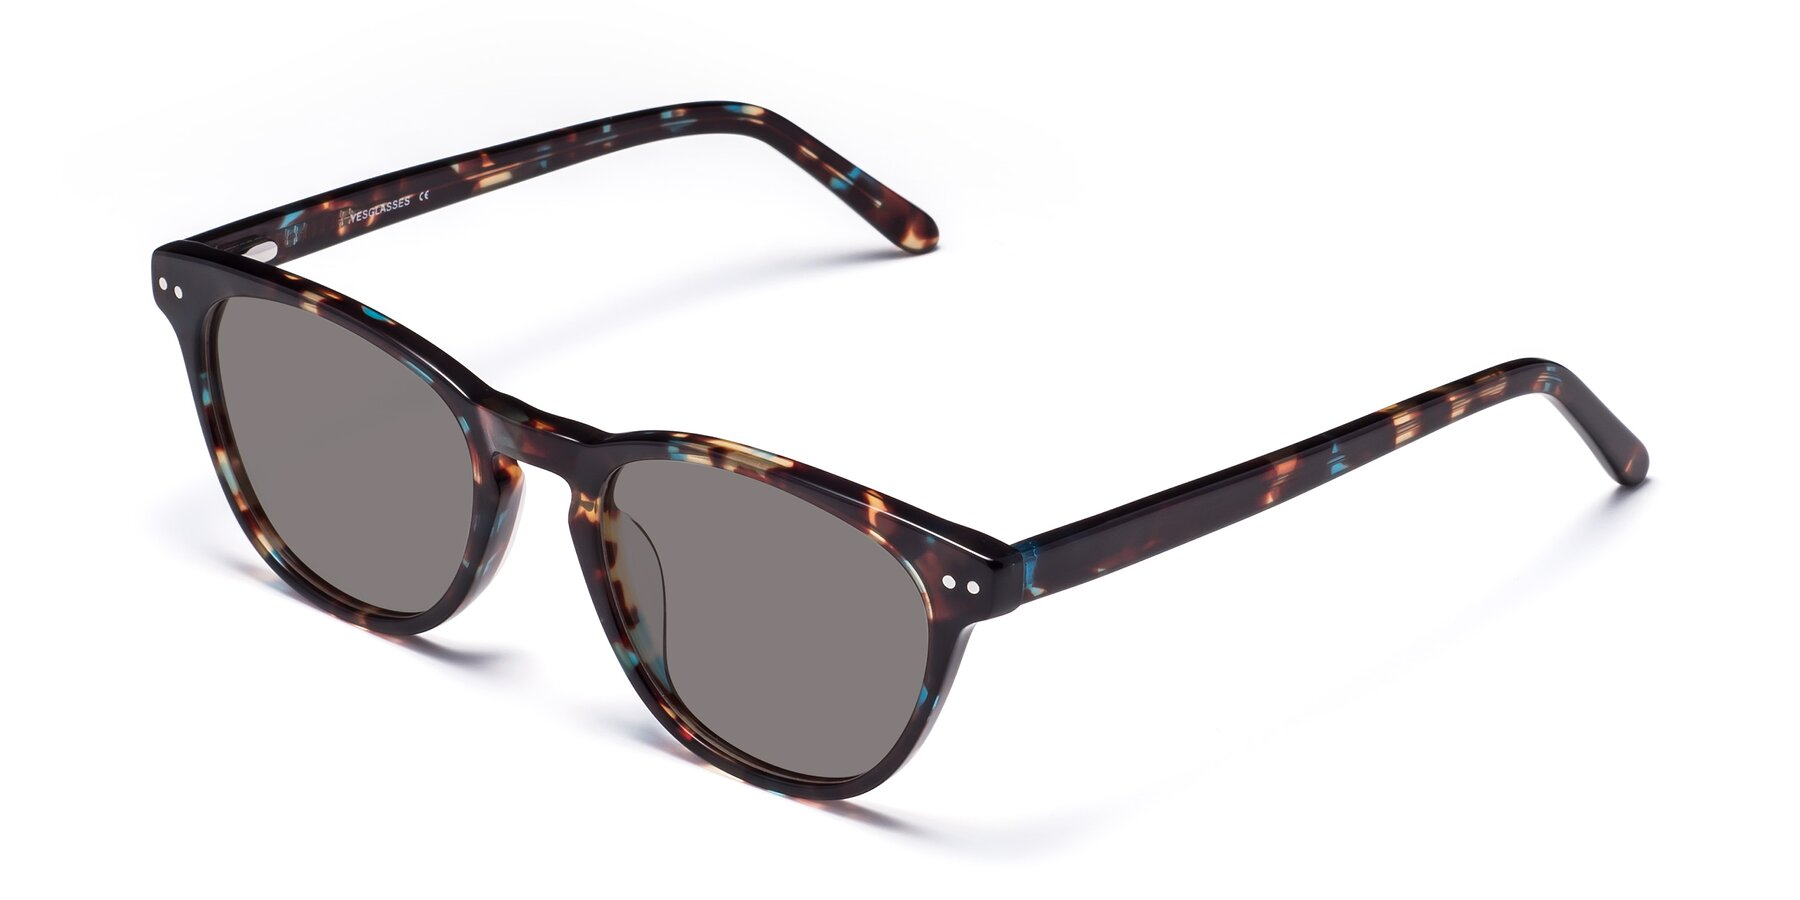 Angle of Blaze in Tortoise-Blue with Medium Gray Tinted Lenses